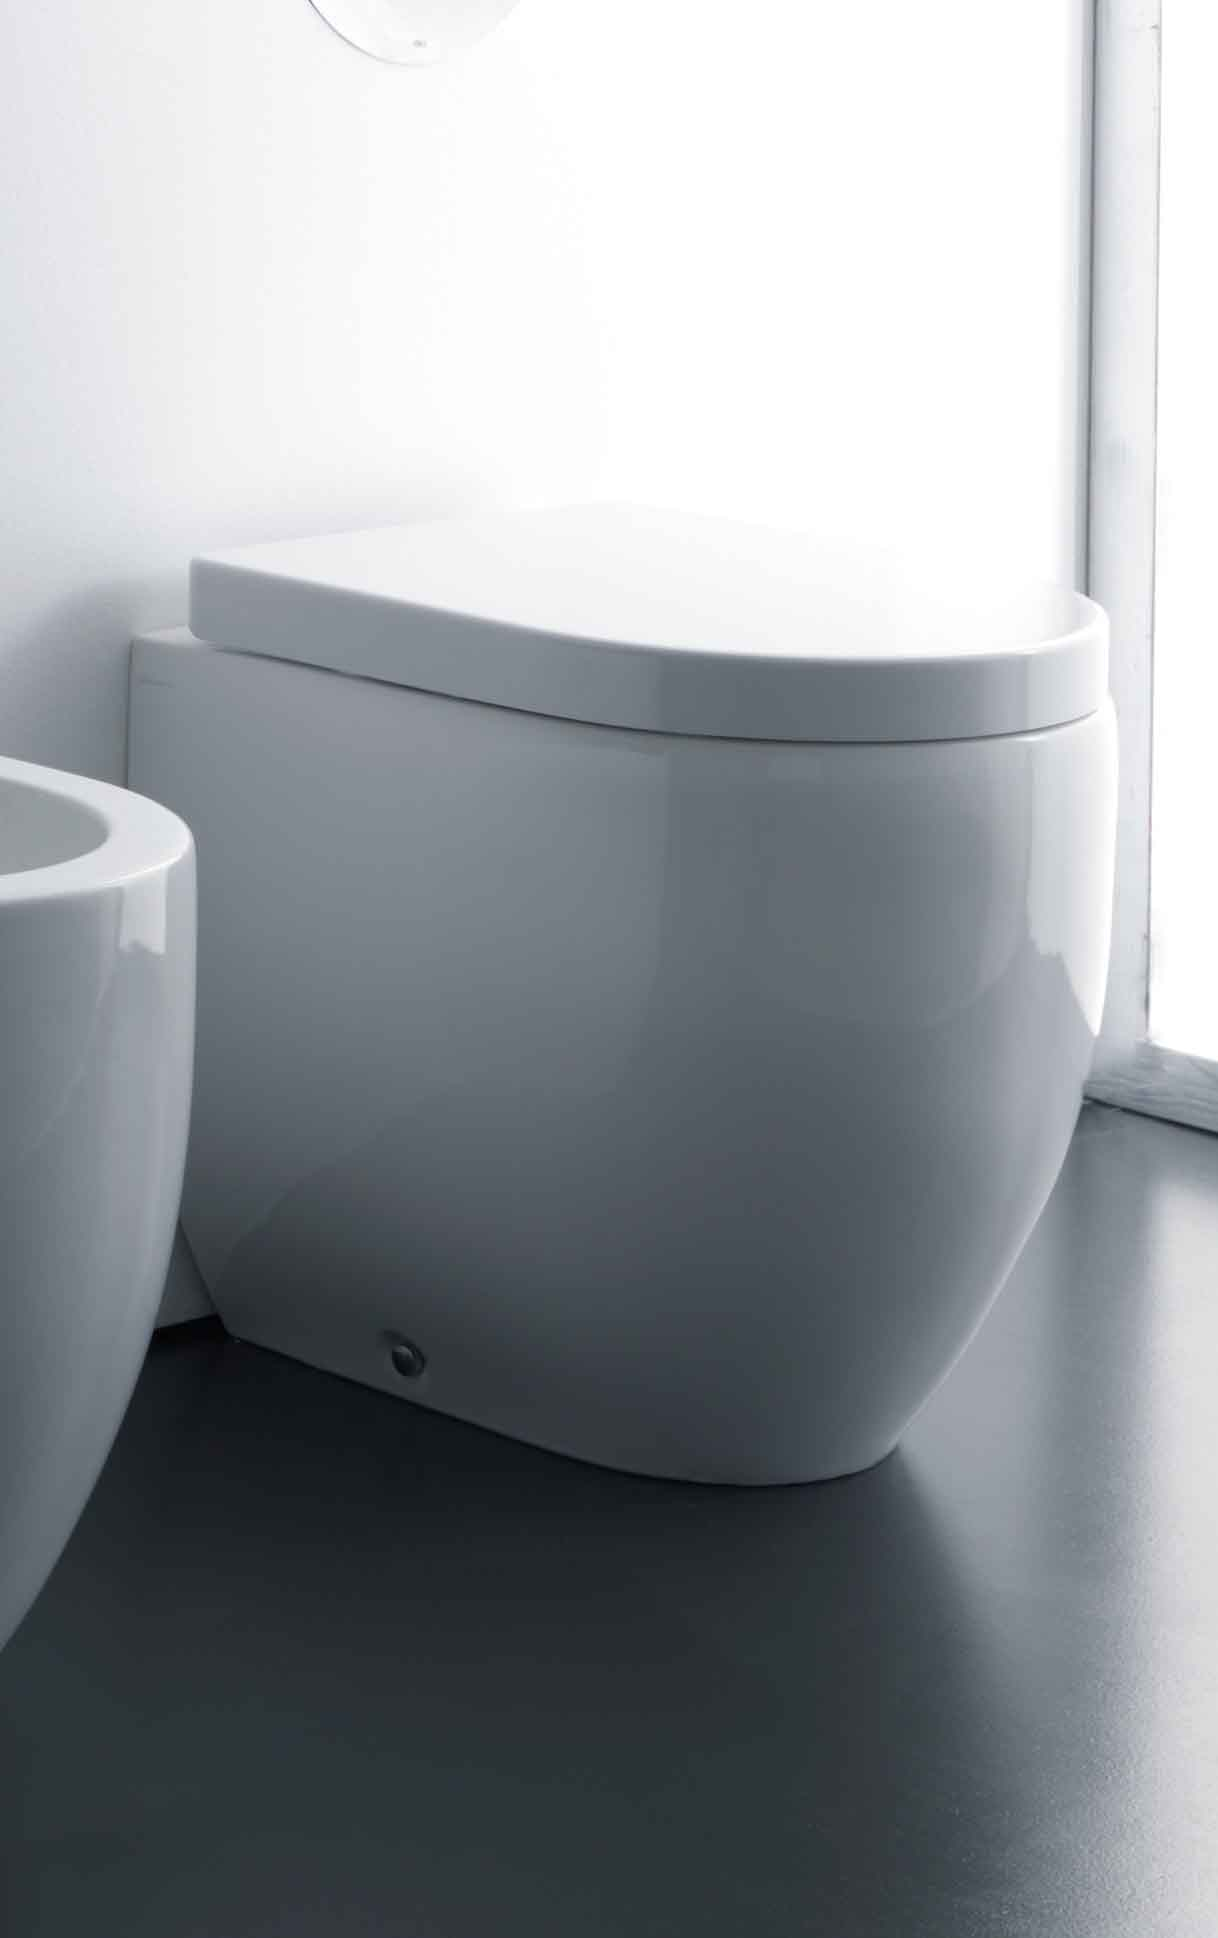 Flo Pedestal Suite with  TECE 8cm cistern and TECEnow 9.240.401 button